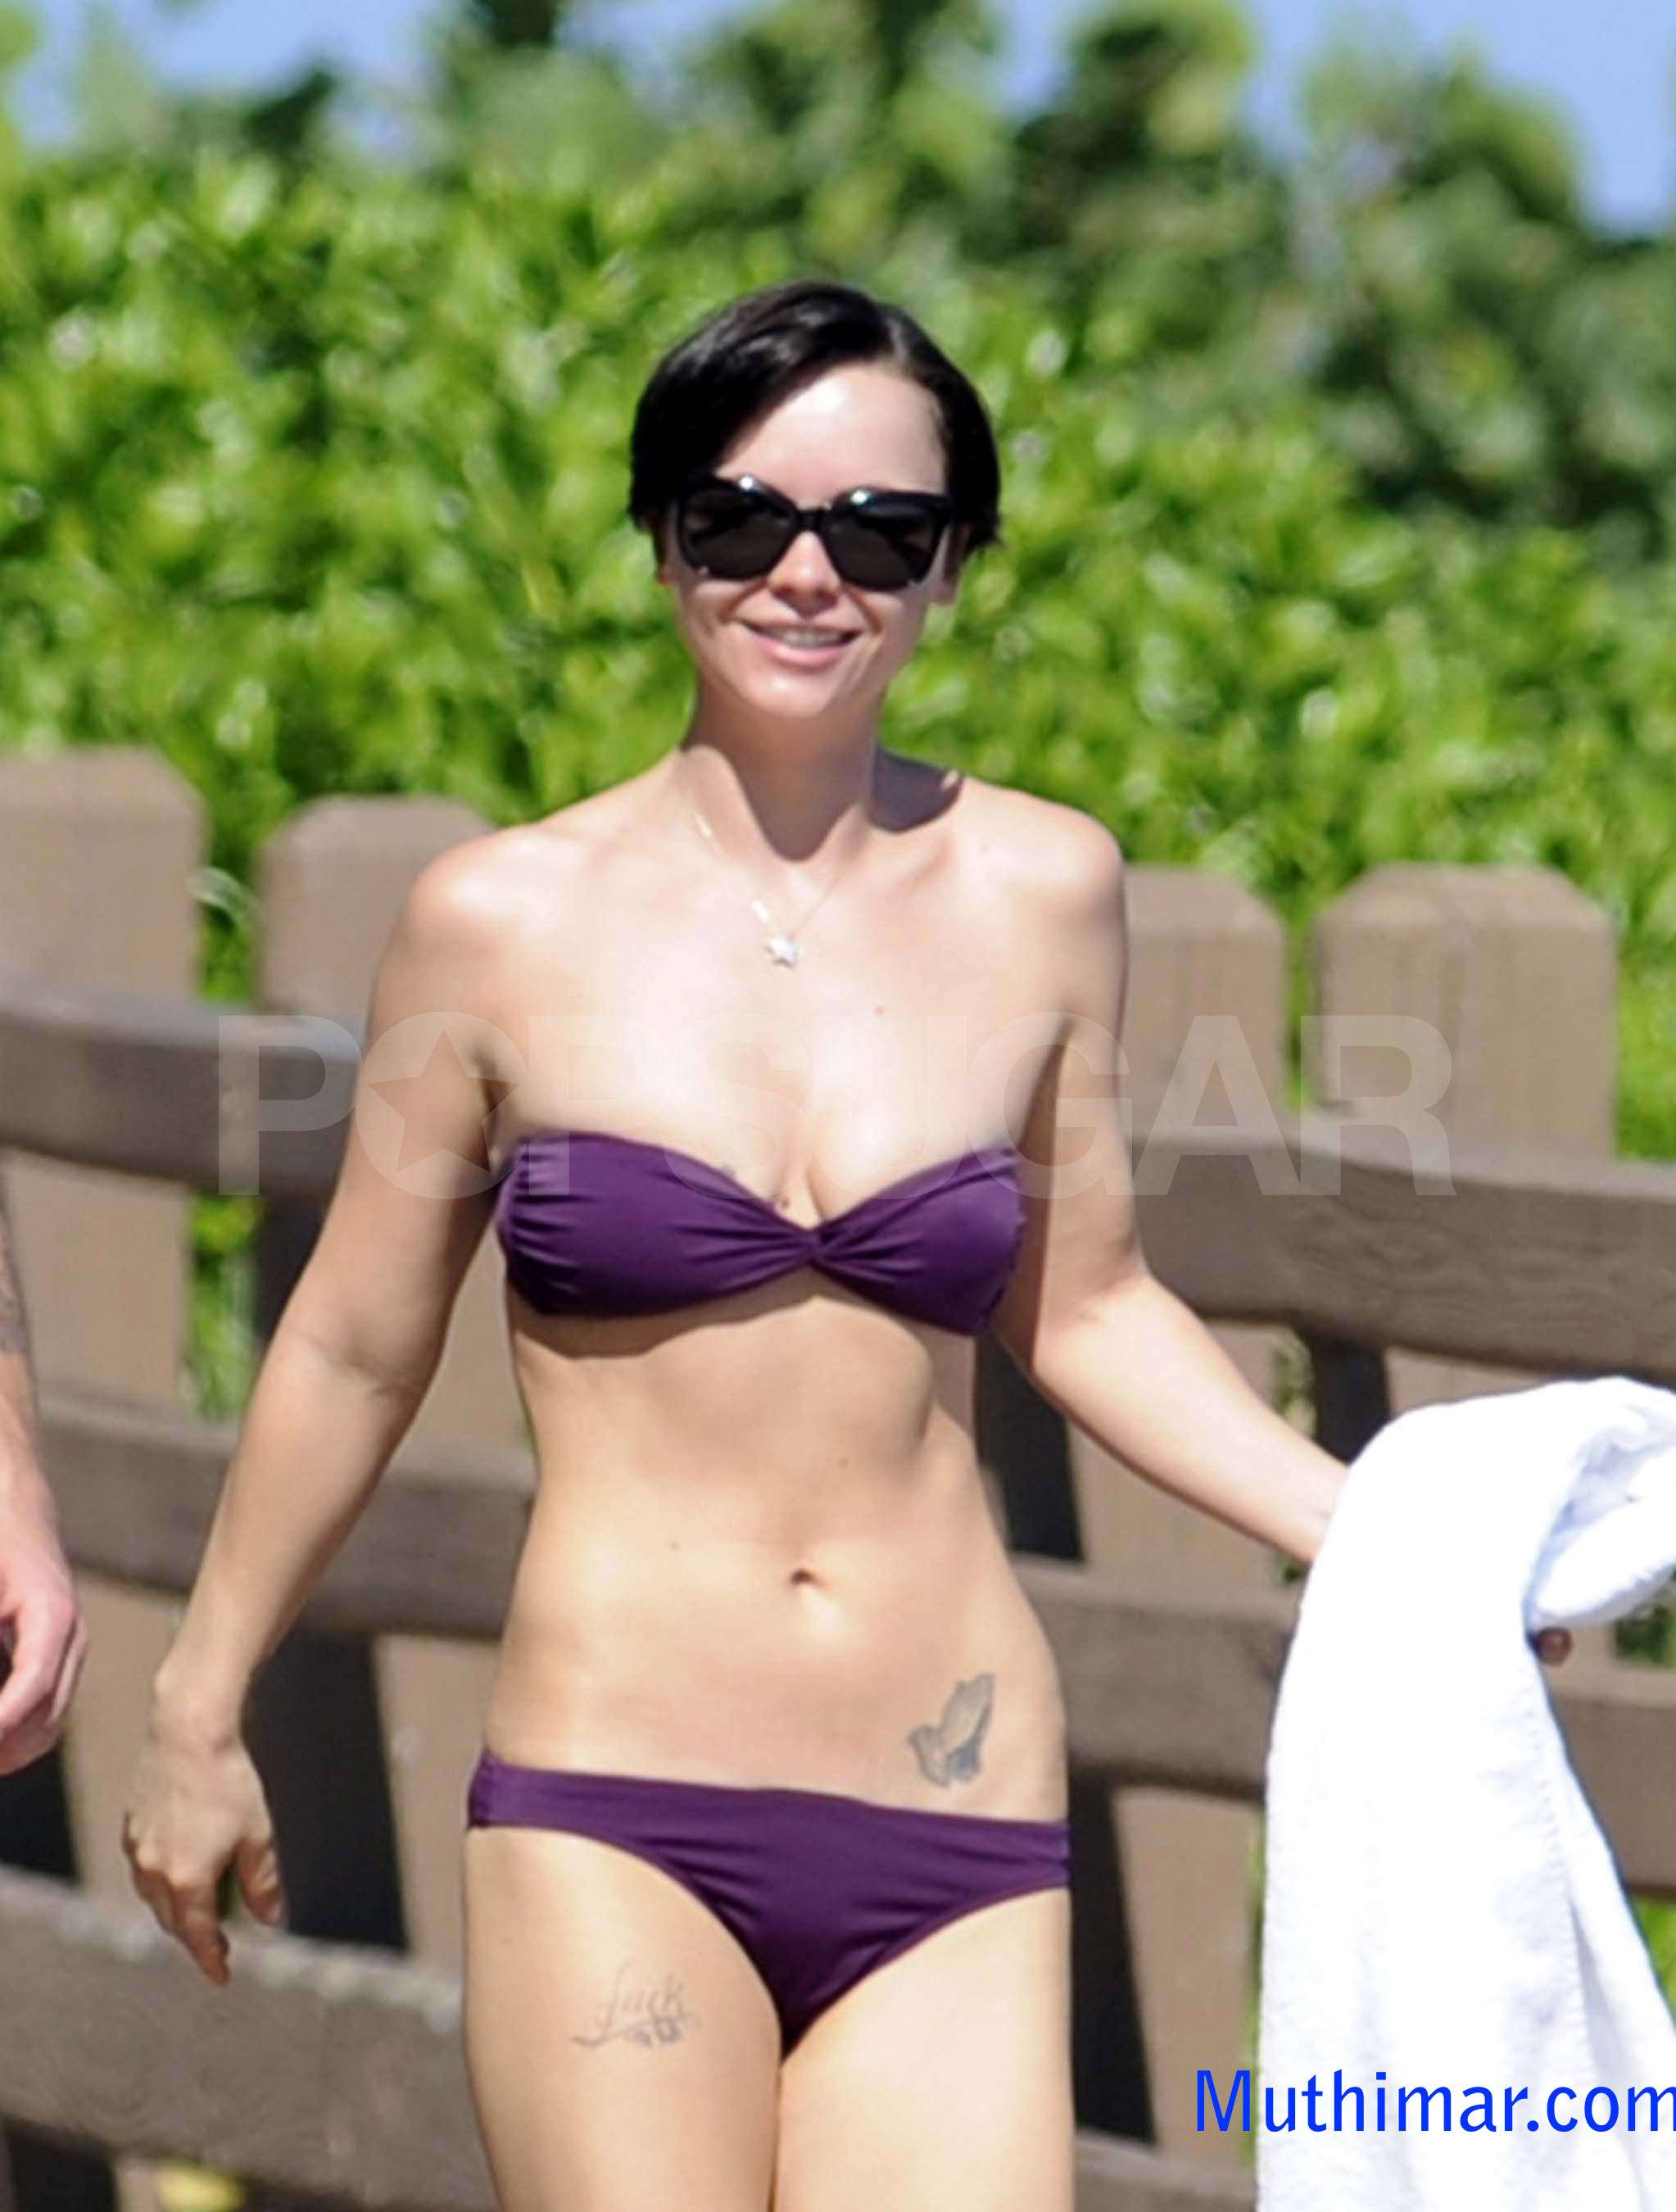 Christina Ricci Hot Bikini